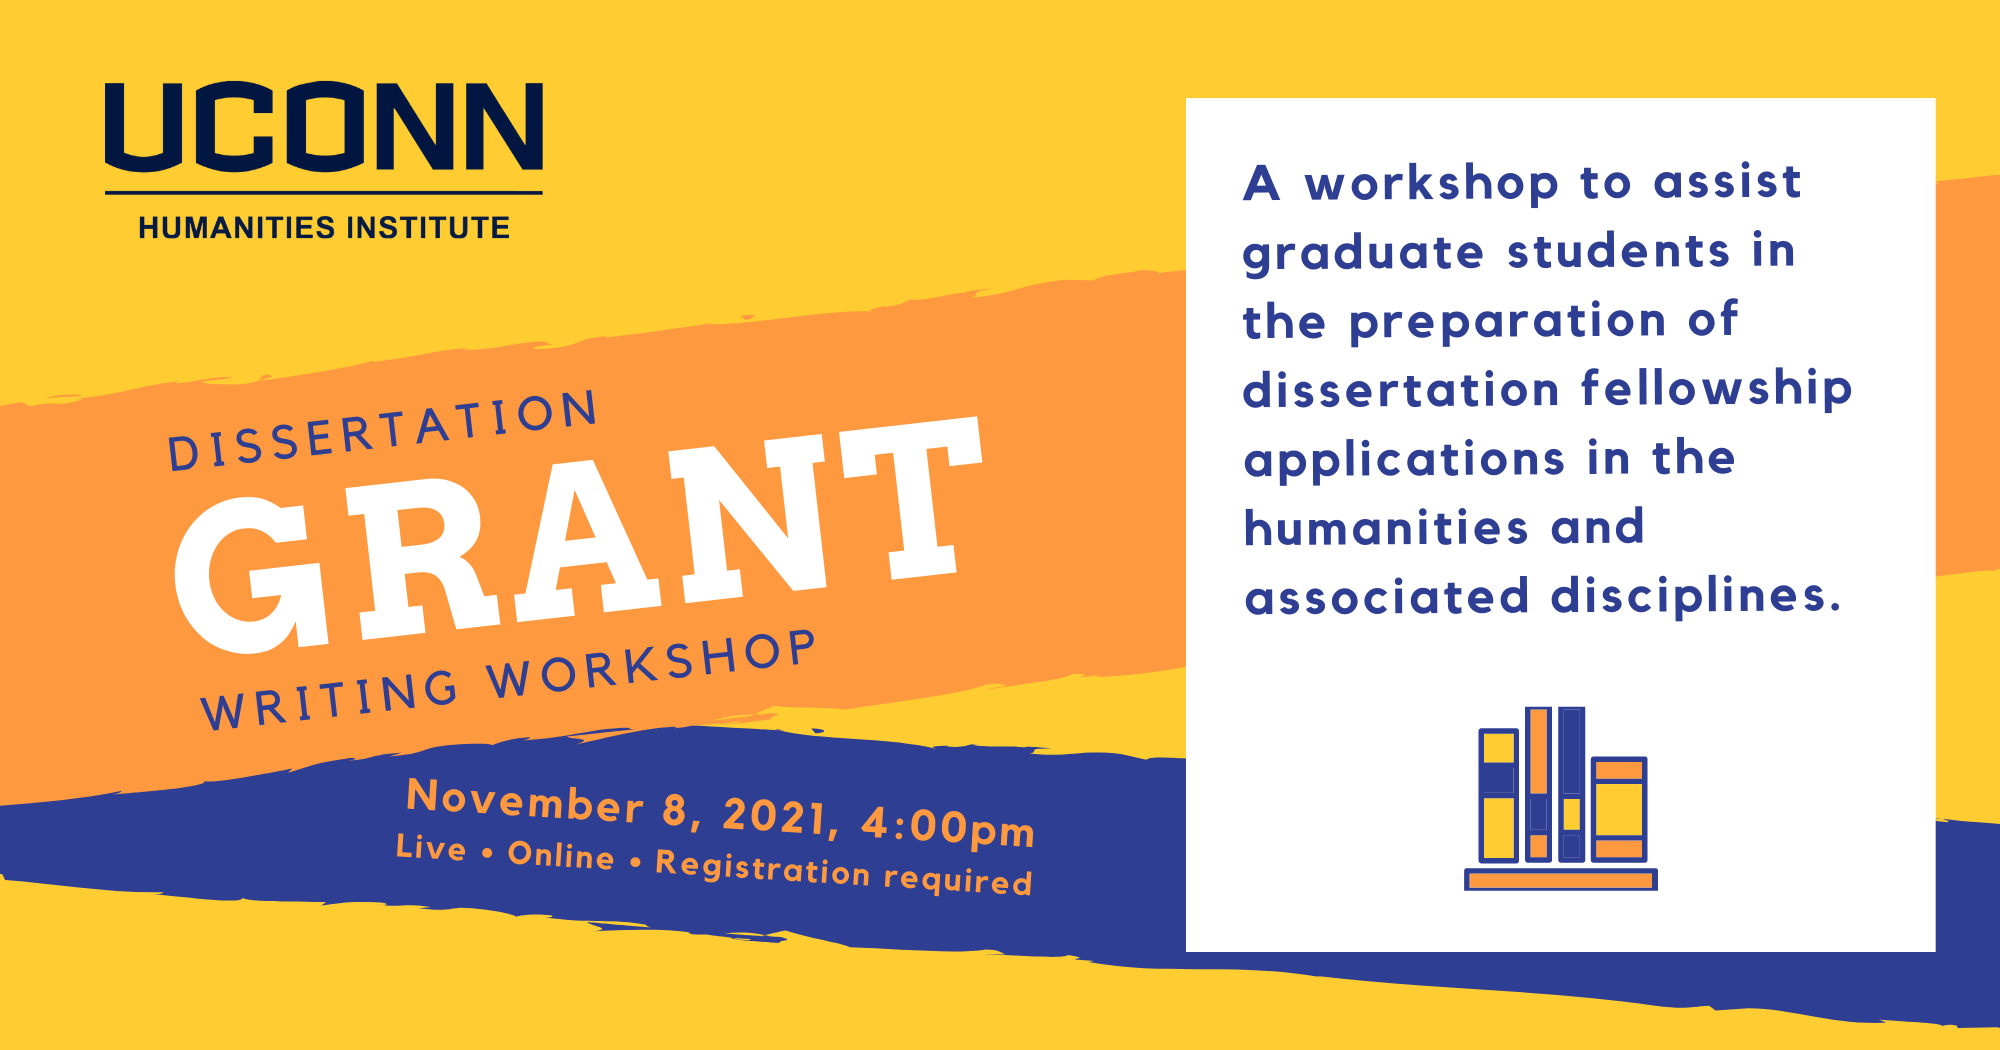 UConn Humanities Institute. Dissertation Grant writing workshop. November 8, 2021, 4:00pm. Live. Online. Registration required. A workshop to assist graduate students in the preparation of dissertation fellowship applications in the humanities and associated disciplines.